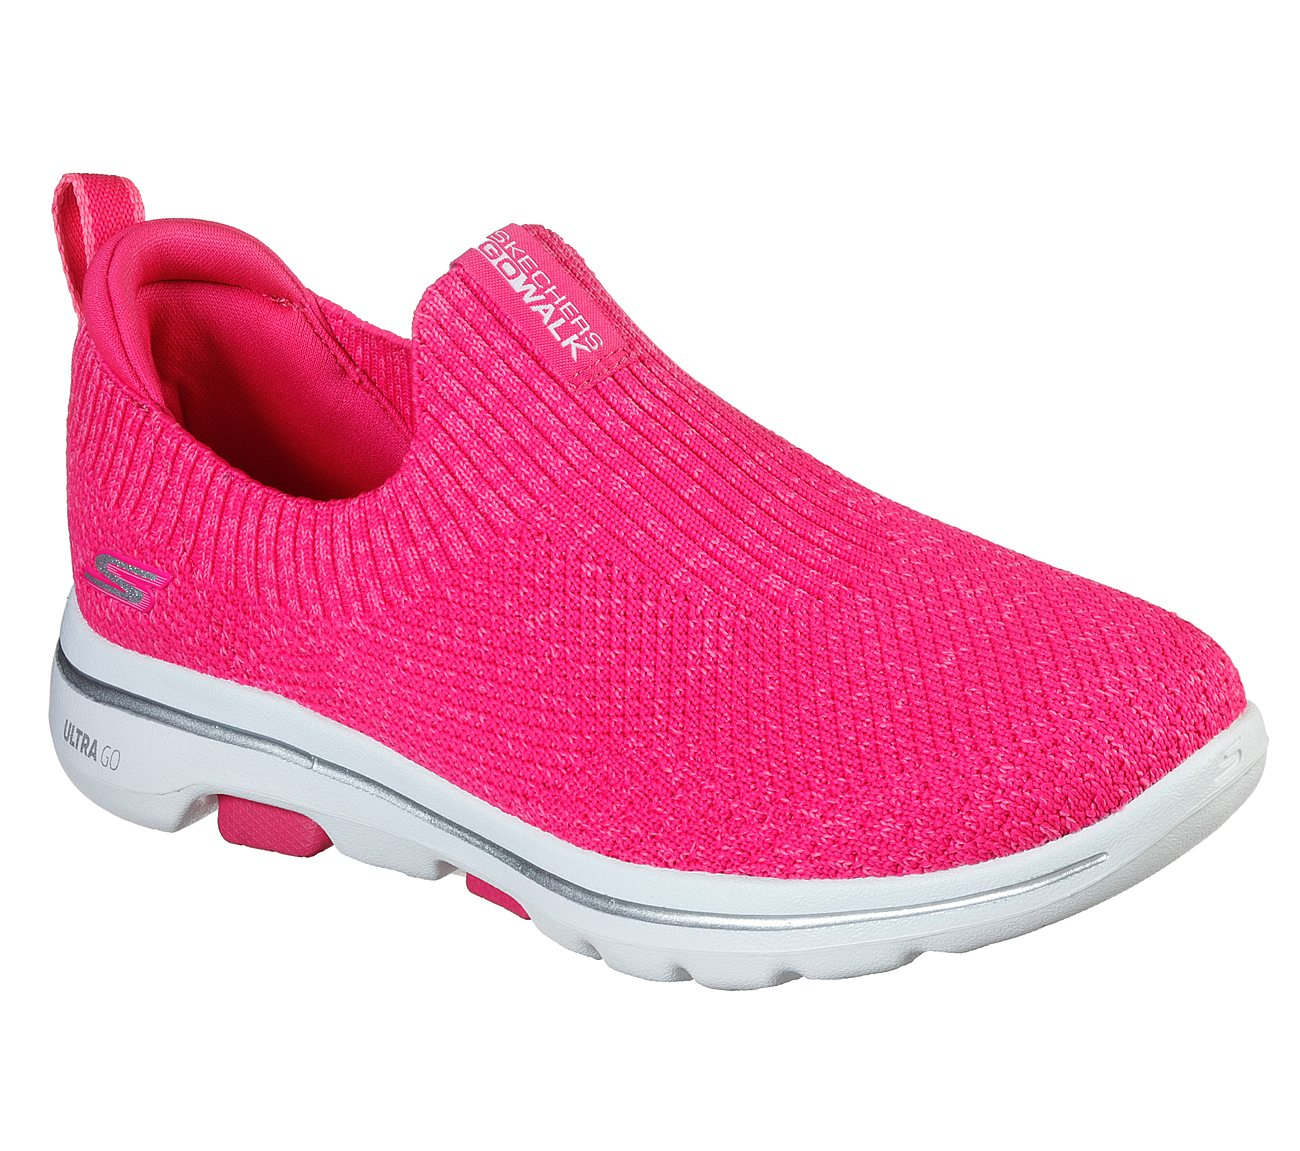 skechers go walk womens sale